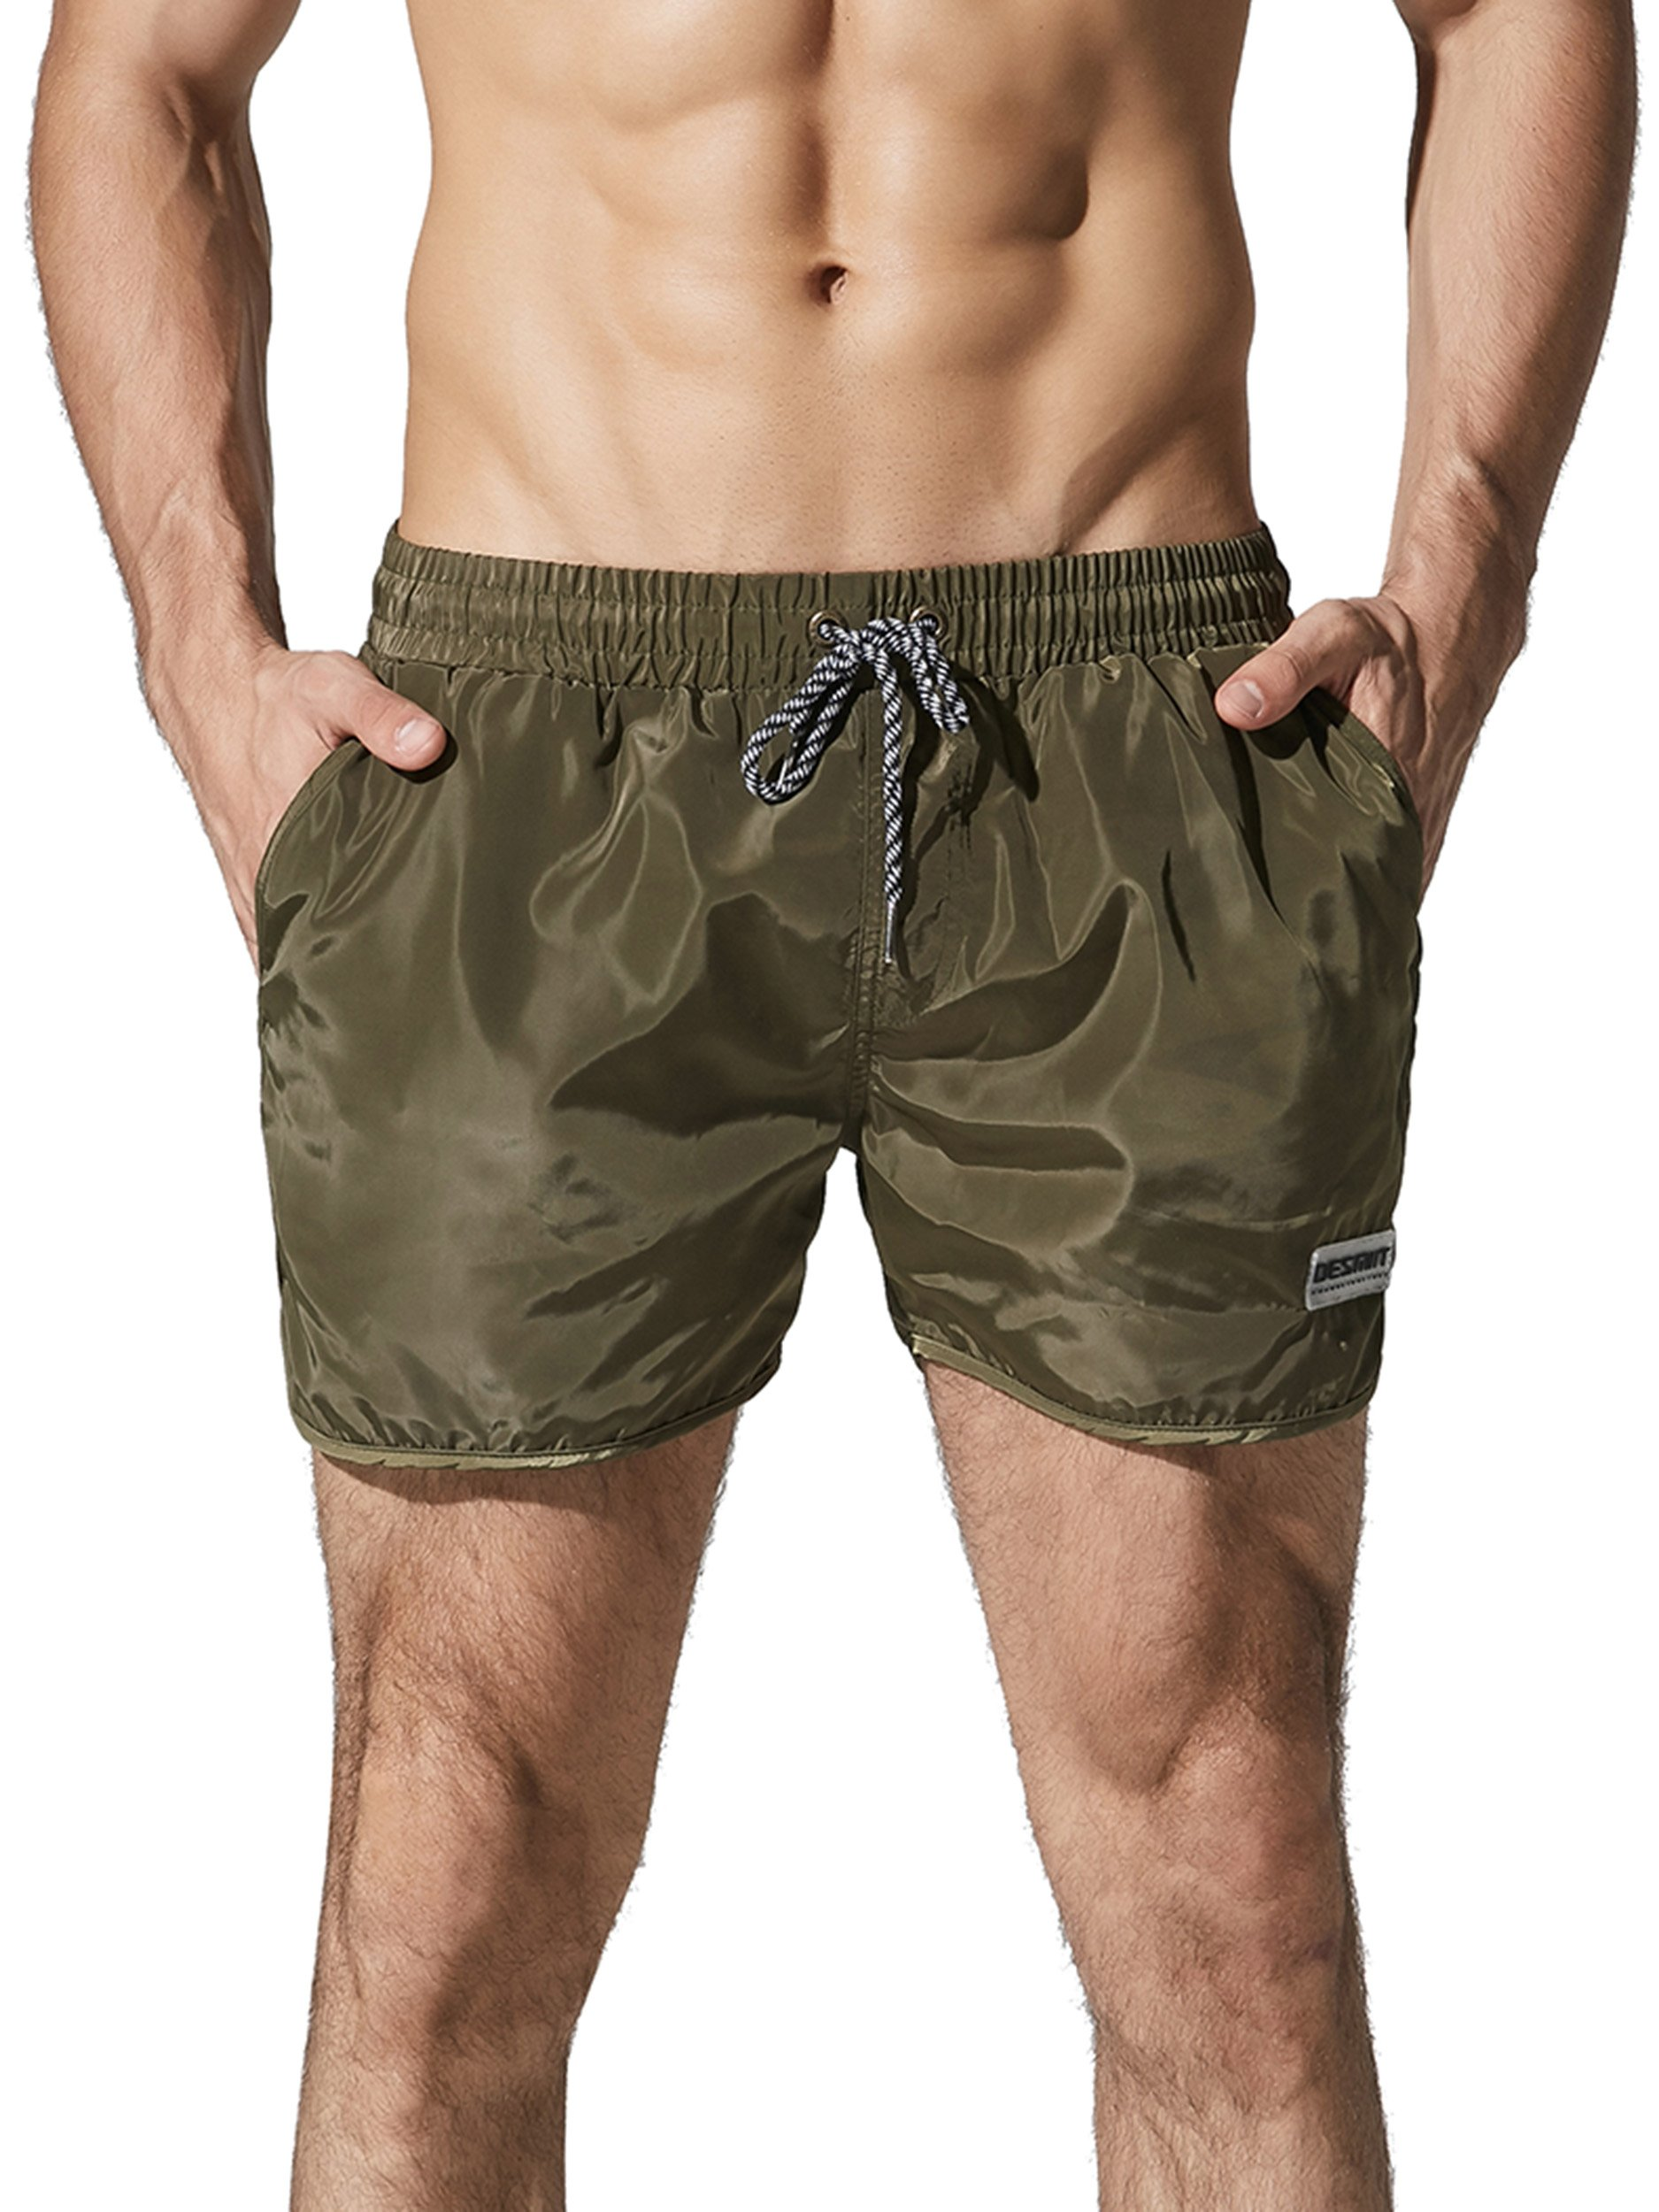 Neleus Men's Runner Athletic Shorts Swimming Trunks with Pockets,708,Olive Green,L,Tag 2XL